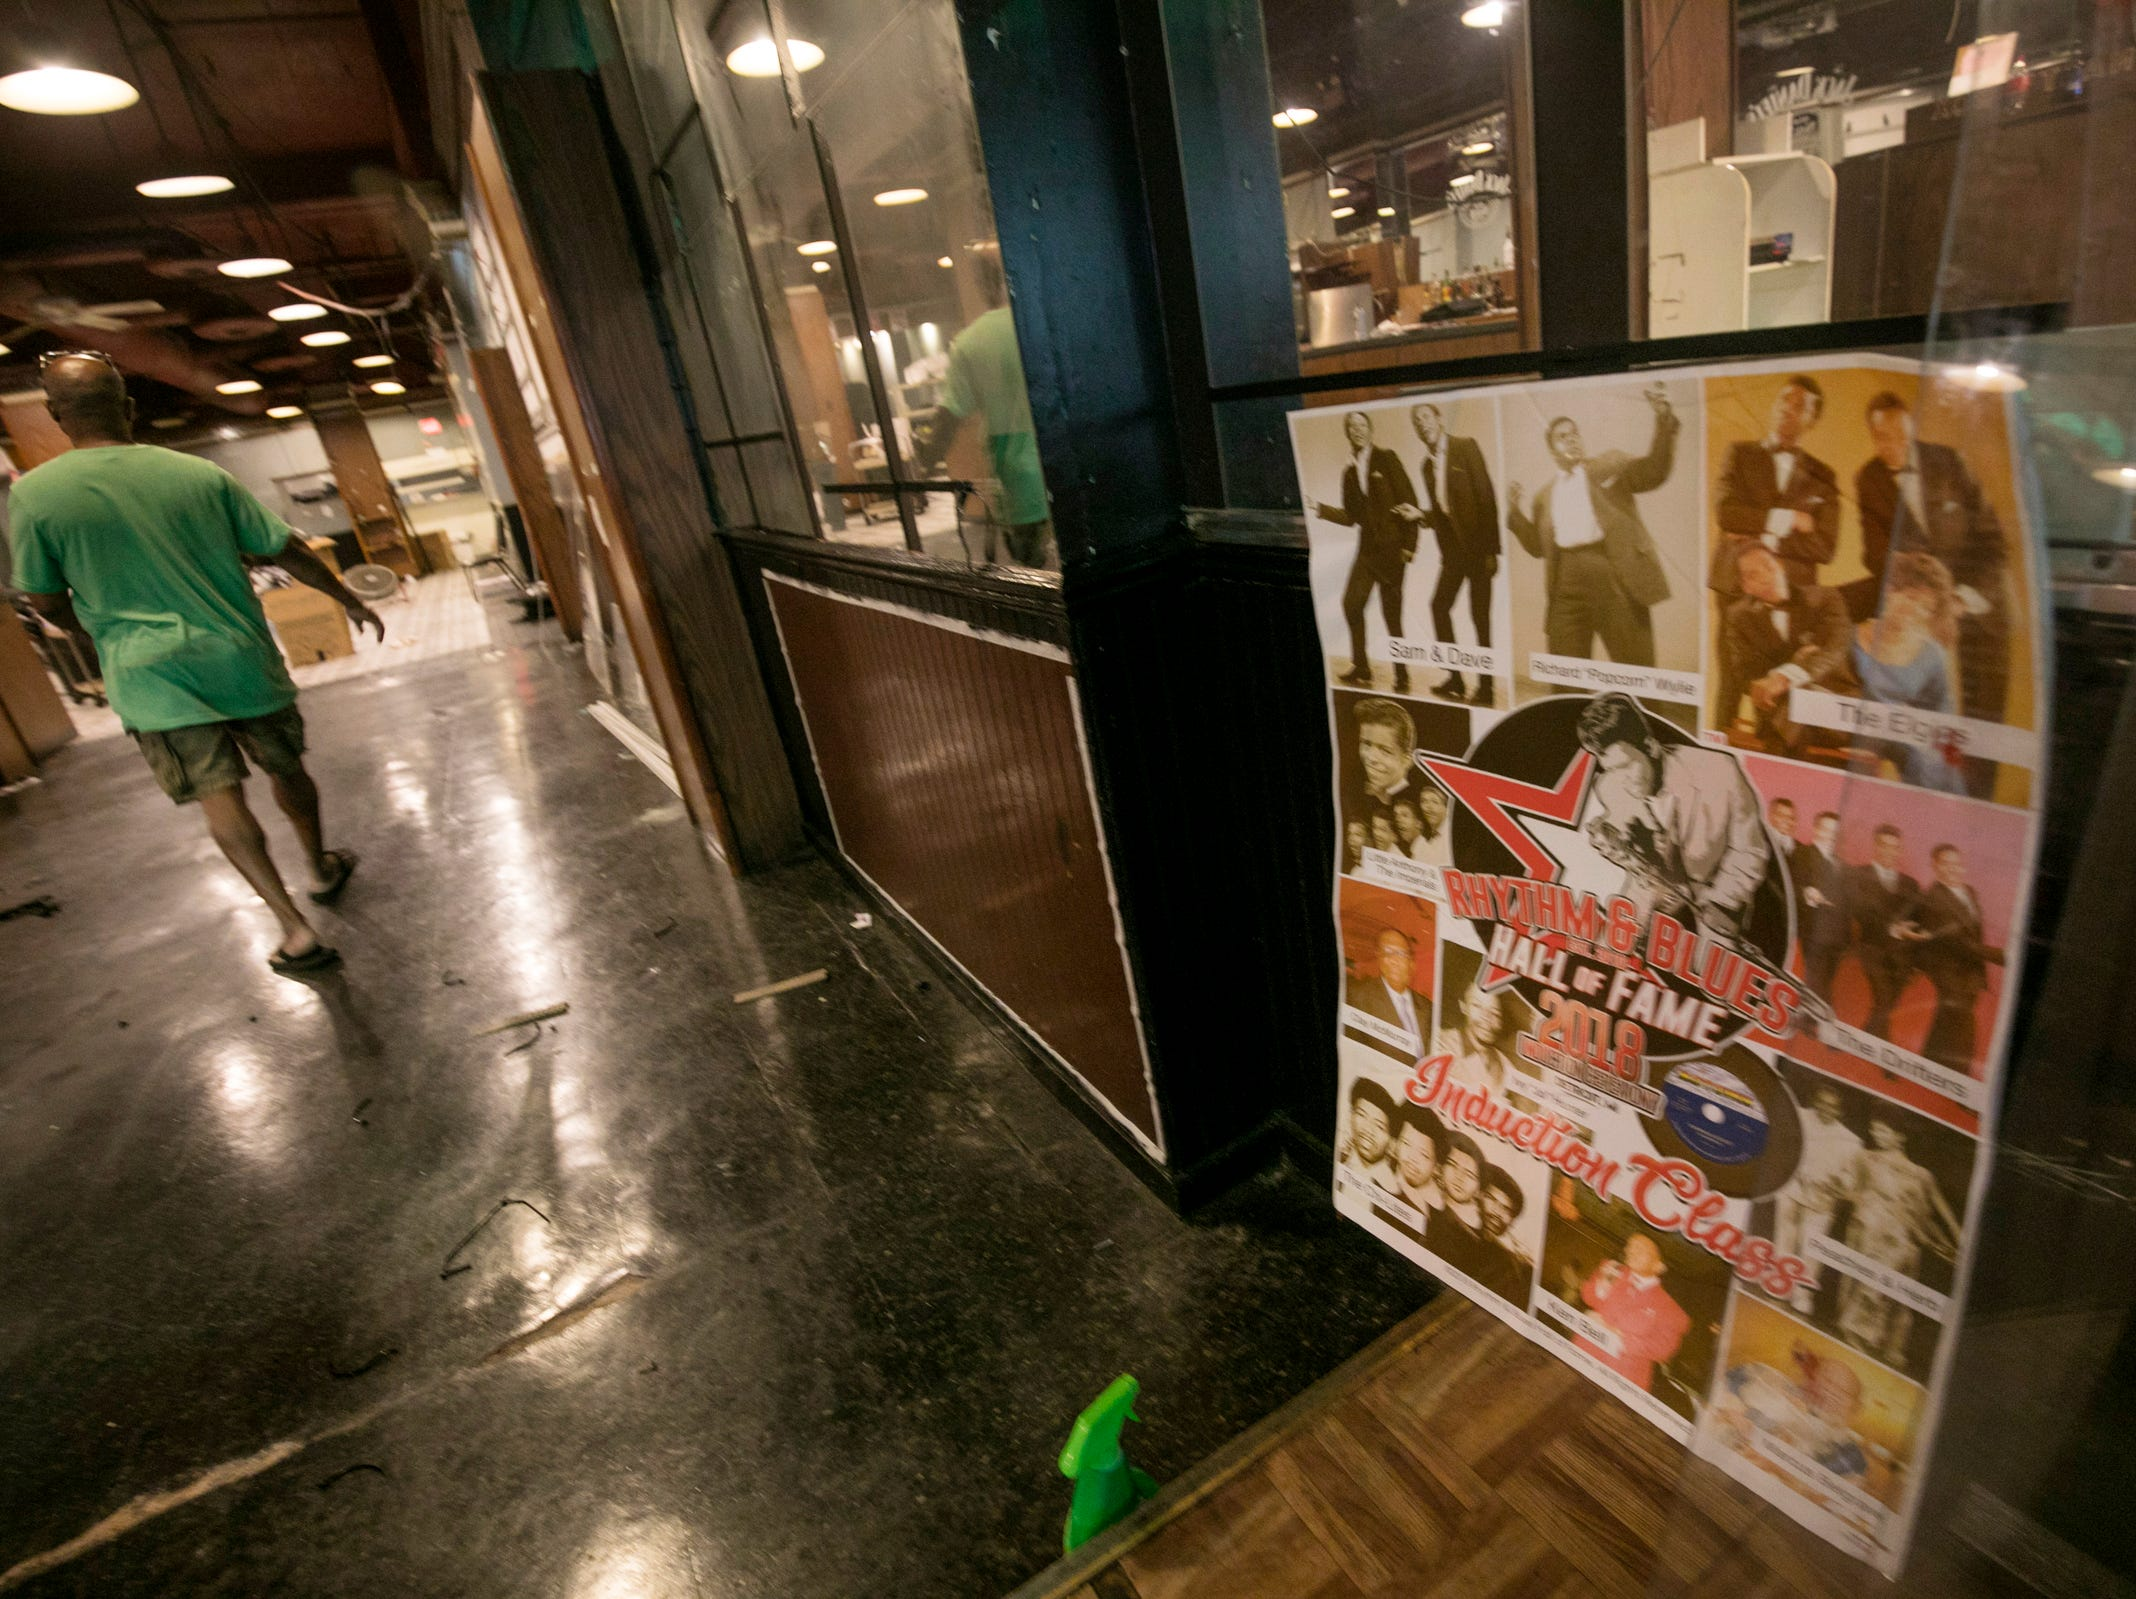 Cobo Joe's co-owner Delroy Thomas, 49, packs up memorabilia before closing the doors on Tuesday, July 31, 2018.